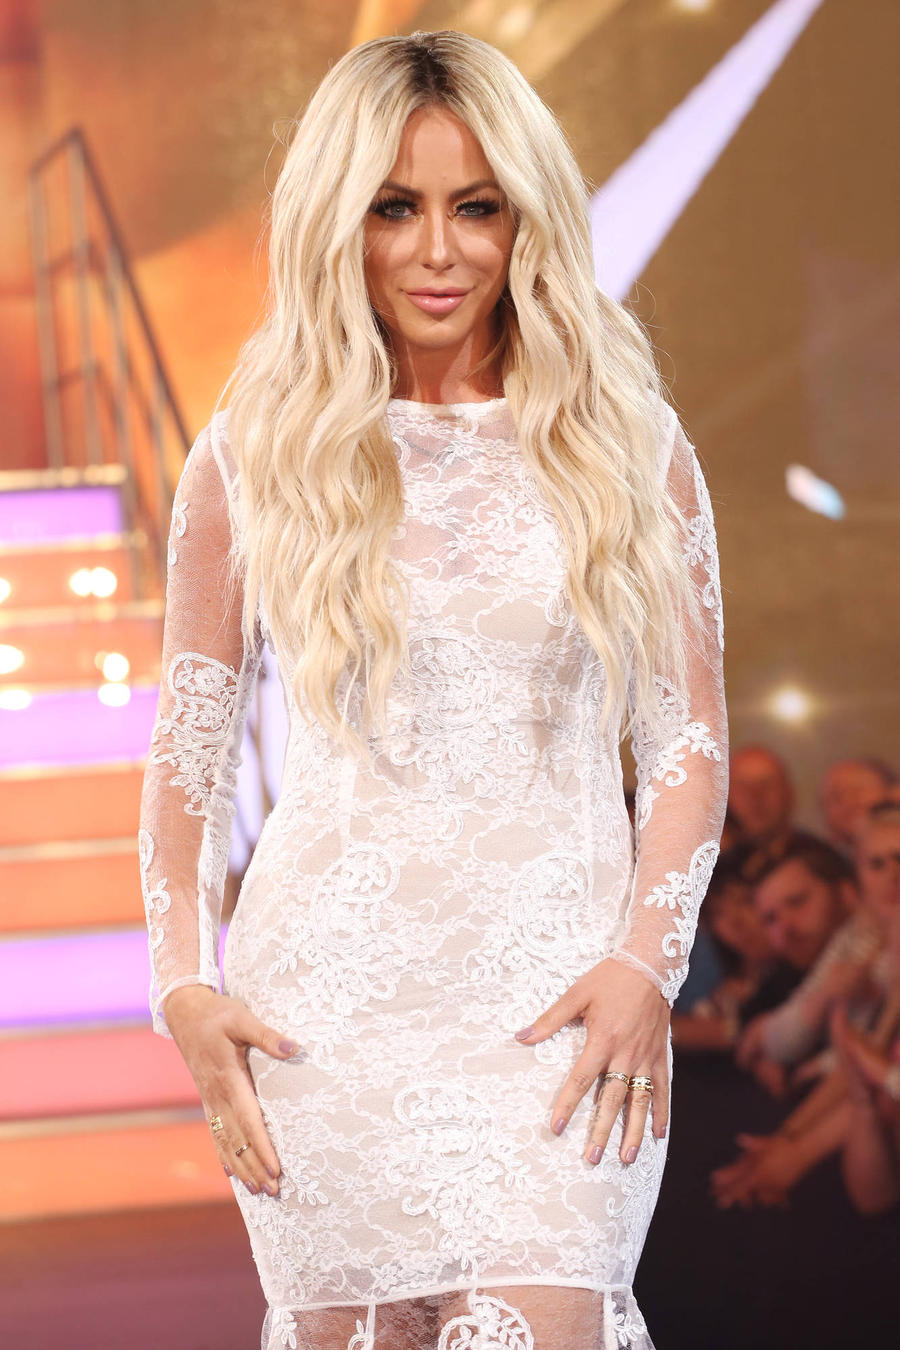 Aubrey O'day Warned About Behaviour After Spitting In Big Brother Castmate's Food